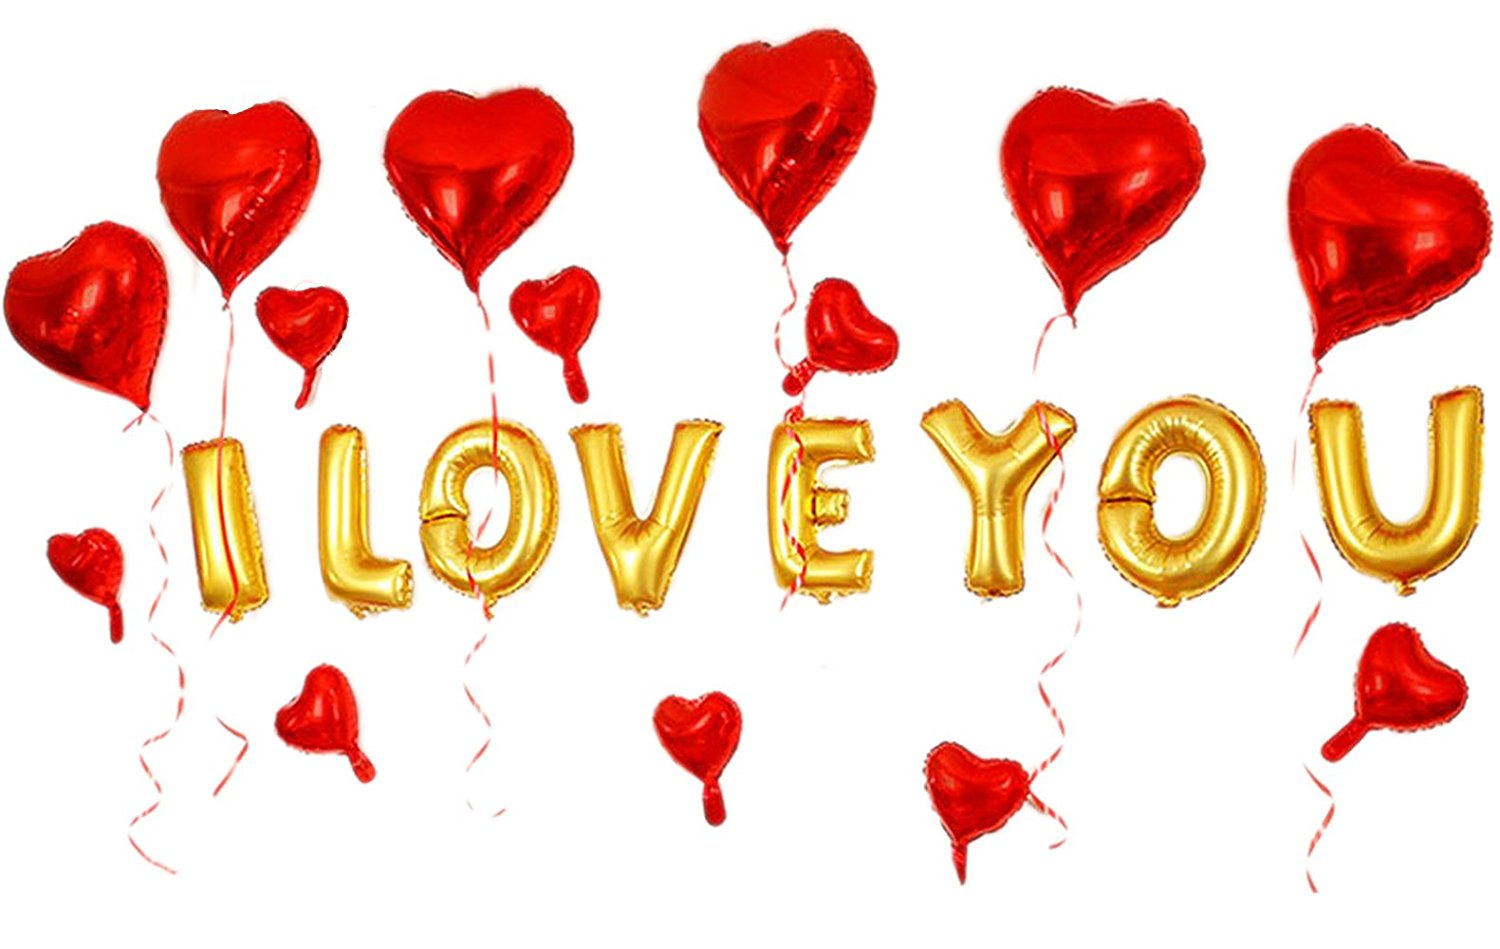 What a sweet surprise it would be to walk into this set of balloons! $14 @amazon, GOER 16 Inch I LOVE YOU Gold Alphabet Letters Foil Balloons Set for Valentine's Day